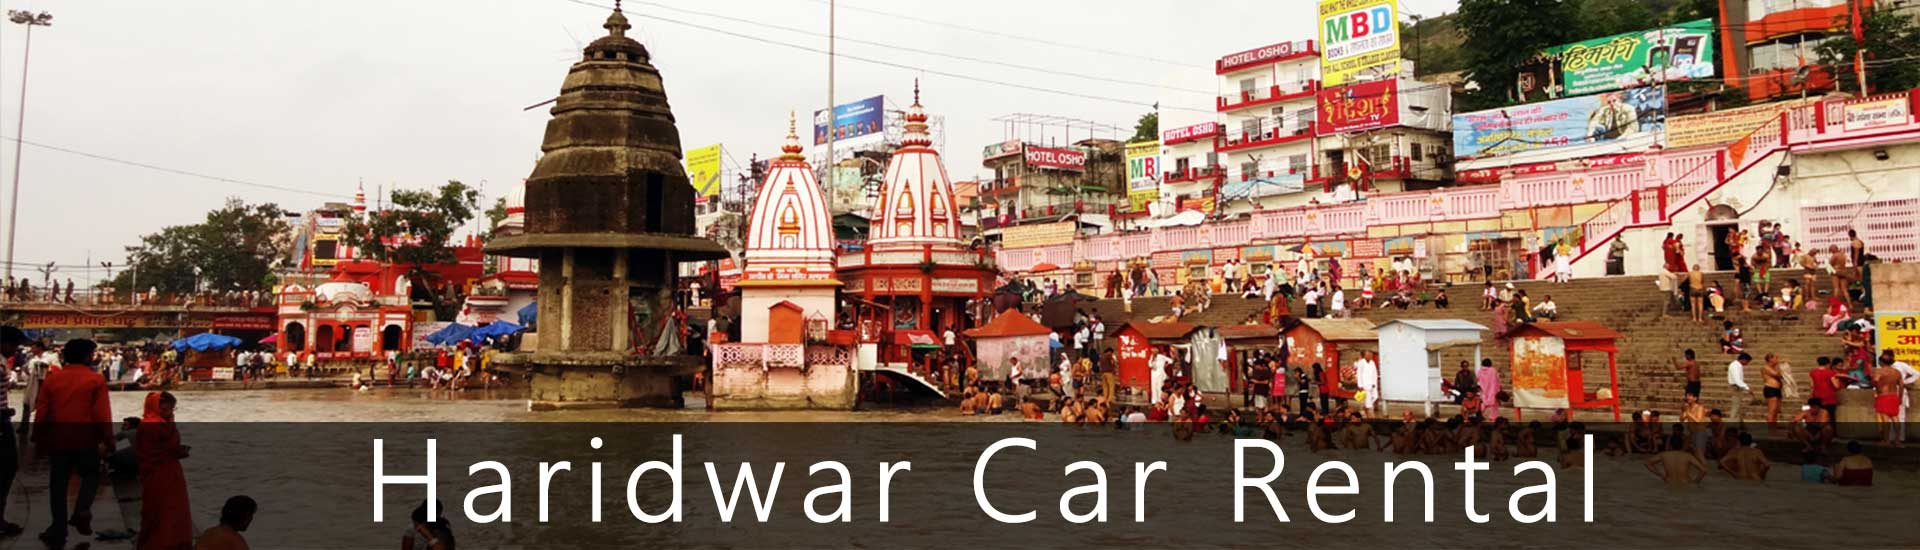 Affordable Taxi rental service for Char Dham Yatra